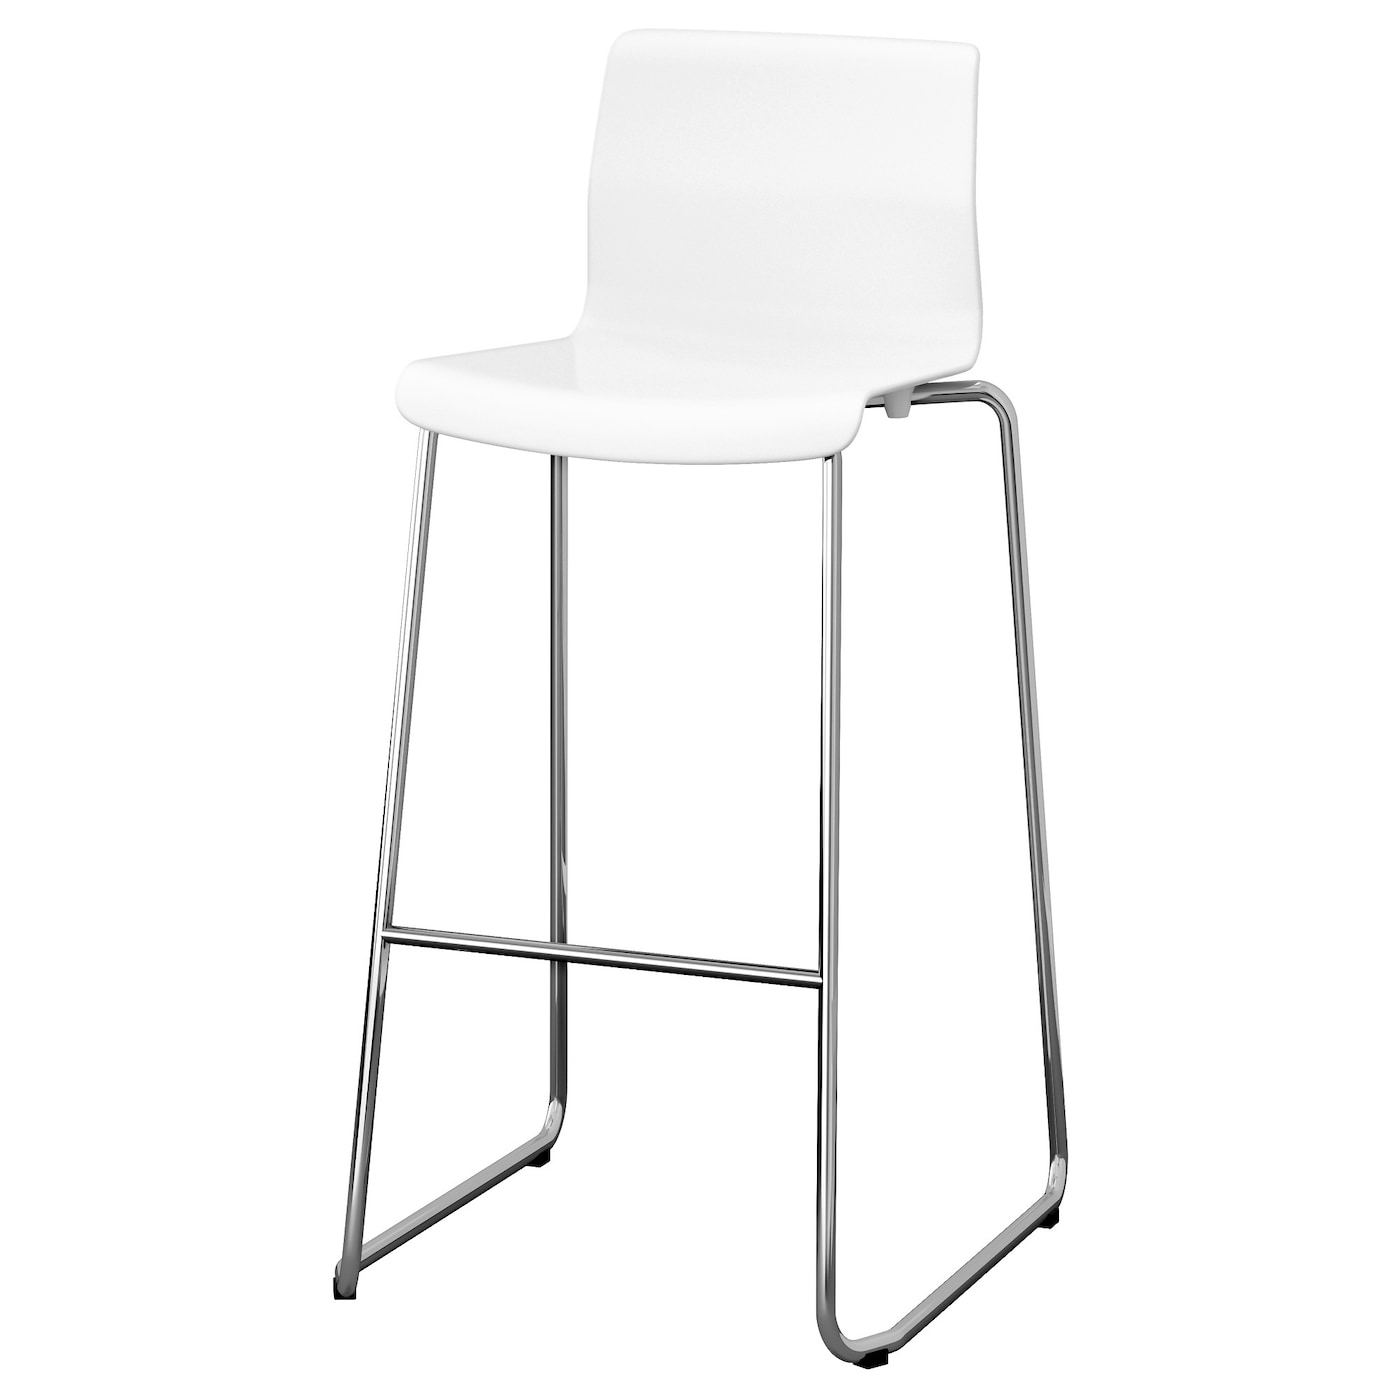 BILLSTA Bar table Whitewhite 130x70 cm IKEA : glenn bar stool white chrome plated0452400pe601325s5 from www.ikea.com size 2000 x 2000 jpeg 149kB